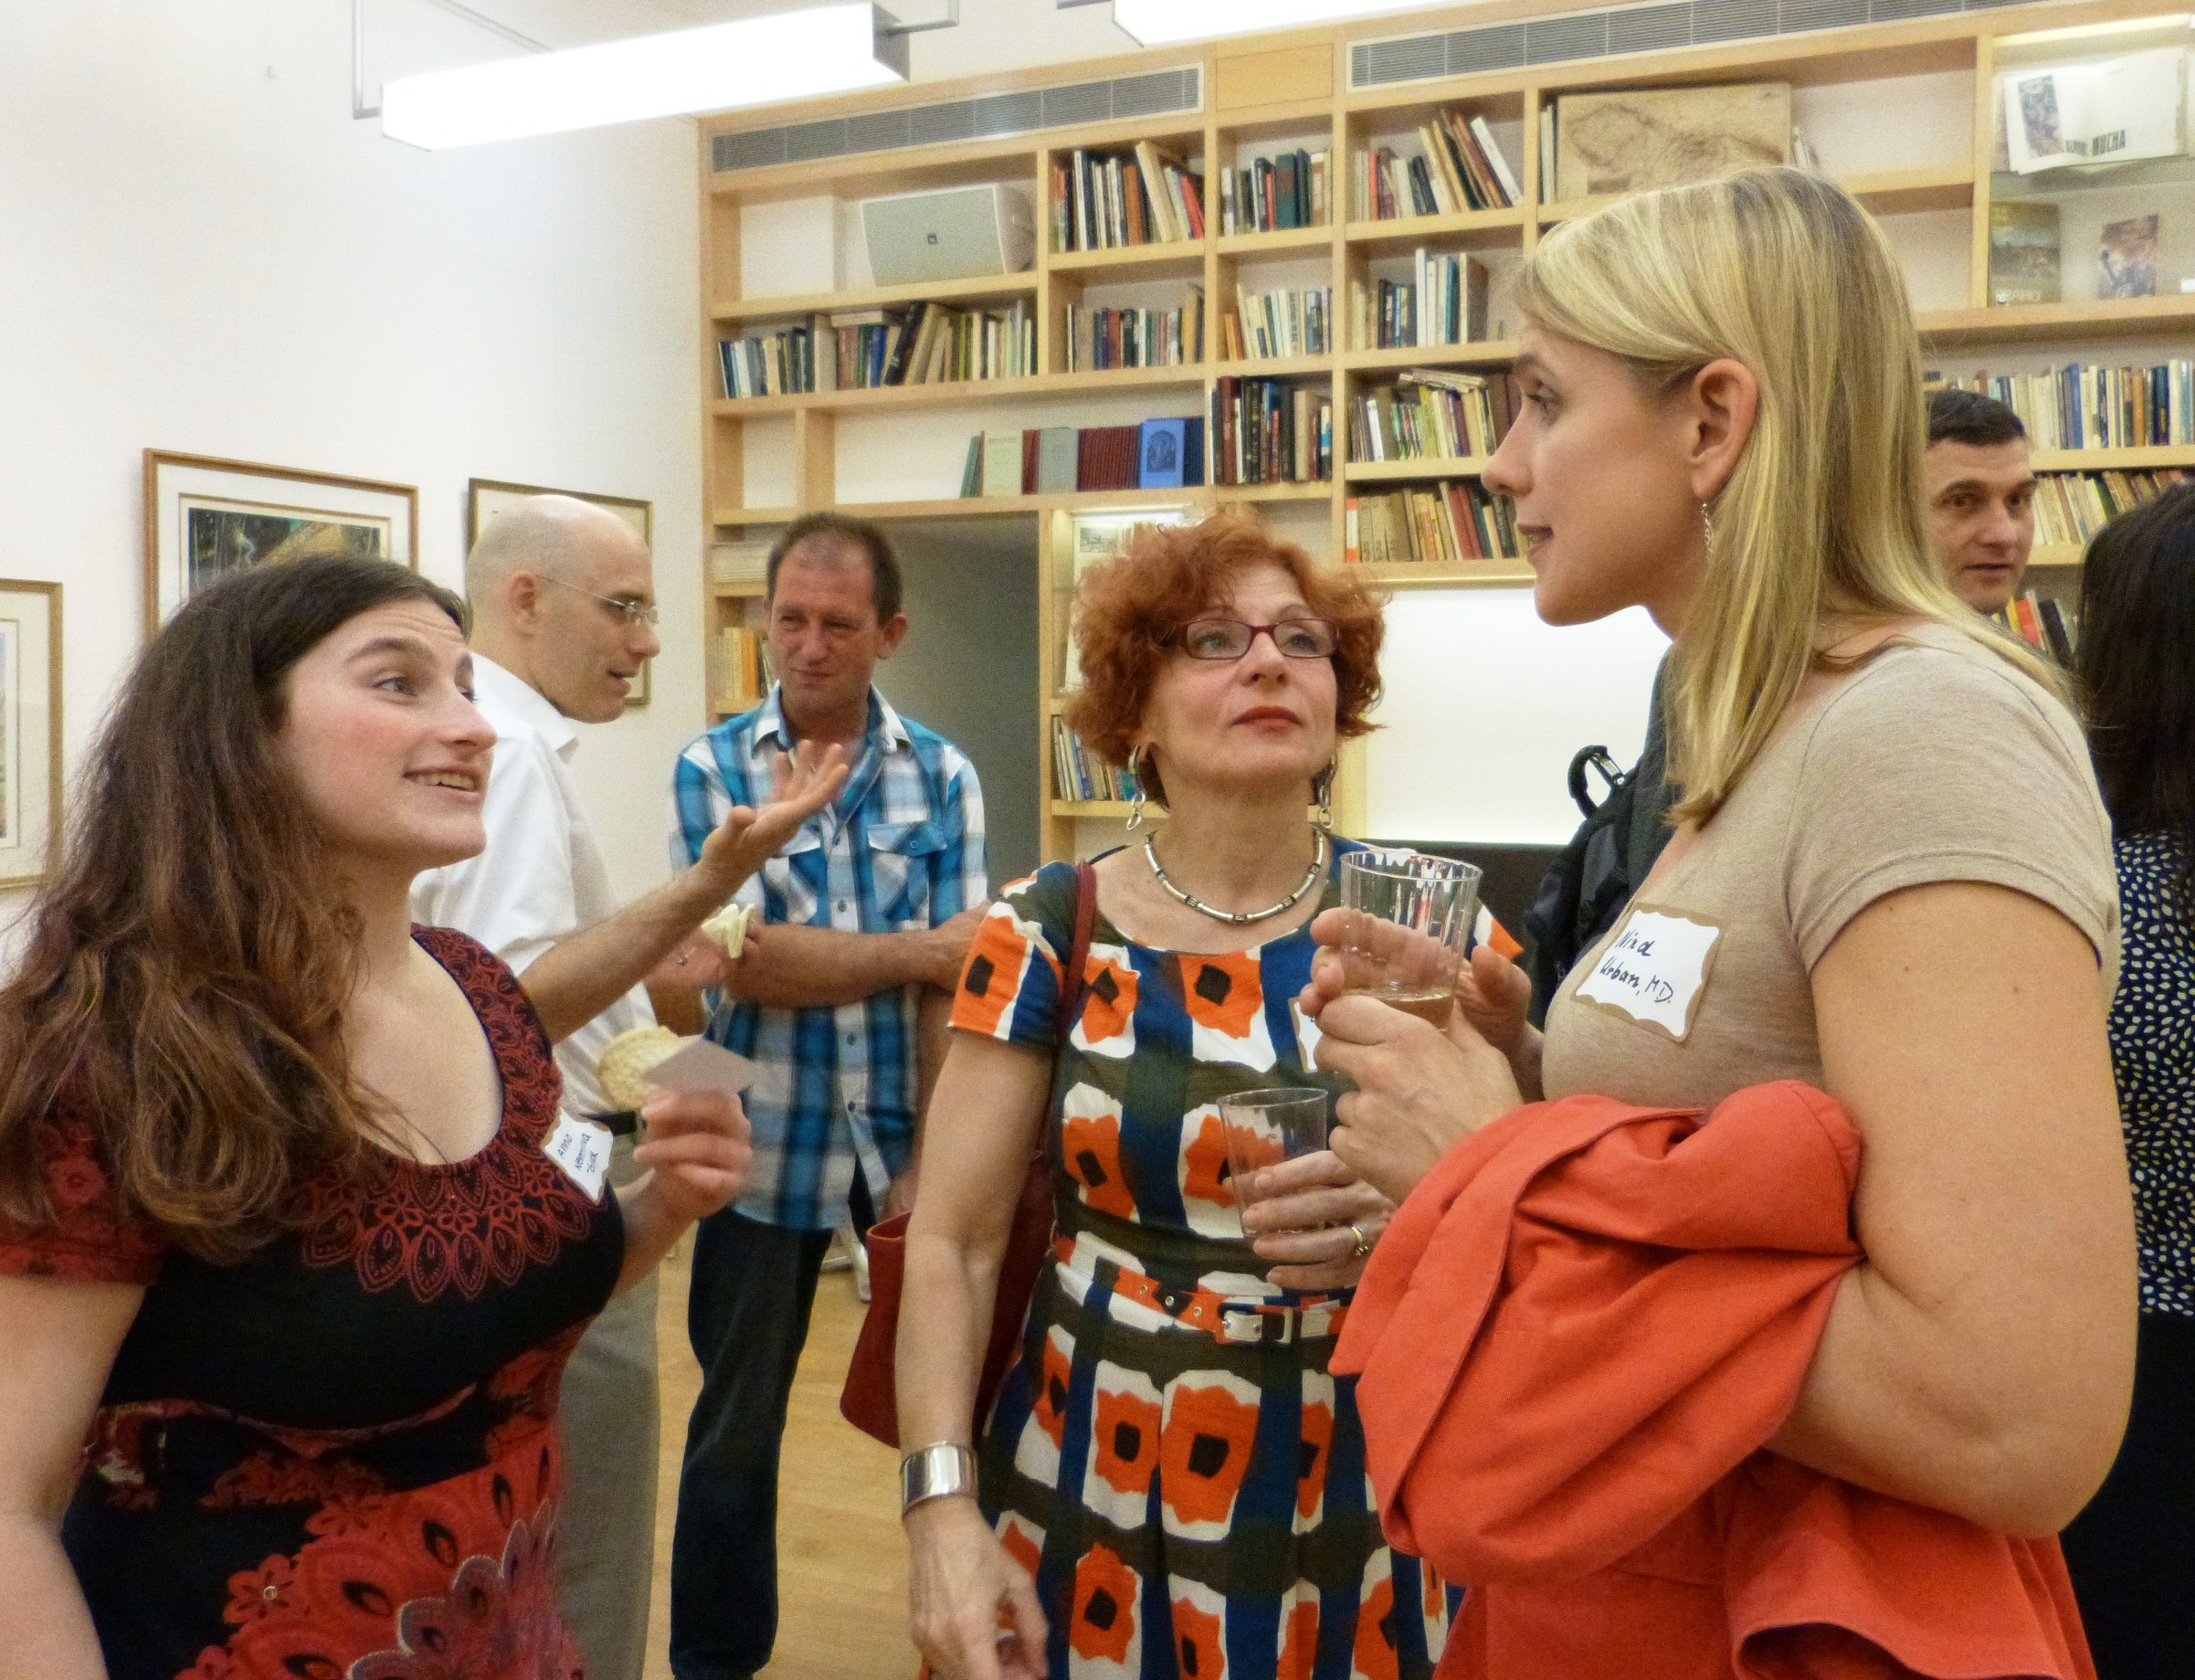 On the right, Dr. Nina Urban, GBI Board Member and Assistant Professor of Clinical Psychiatry at Columbia University, speaks with Summer School student Anna Nemeckova-Gulack (left) and her mother Mrs. Nemeckova (middle).